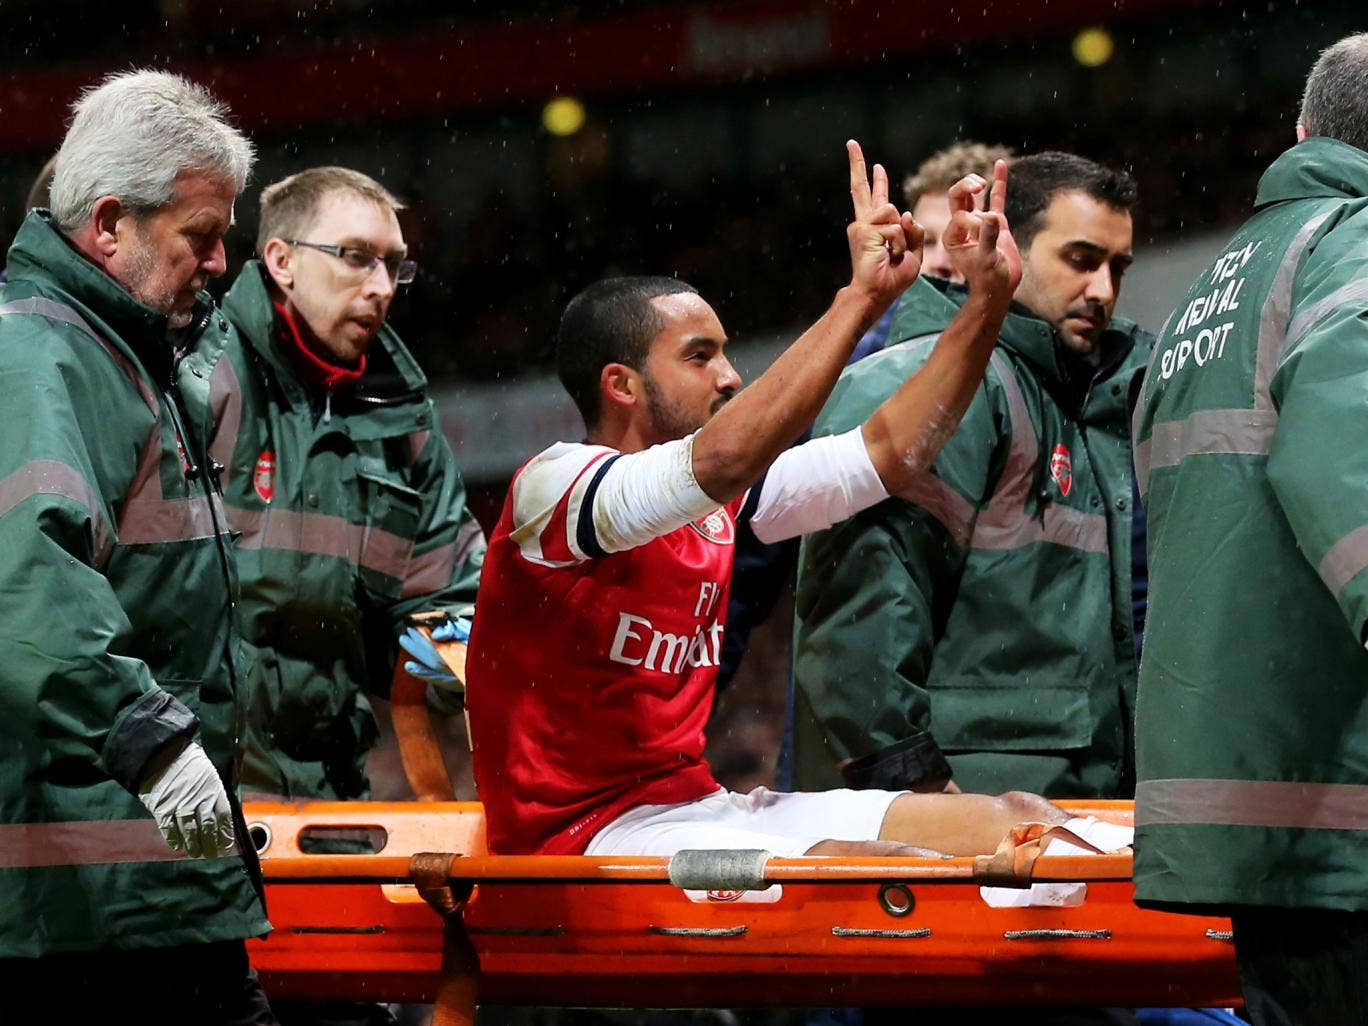 Theo Walcott gestures the scoreline to angry Spurs fans, who threw coins and plastic bottles in the direction of the Arsenal forward